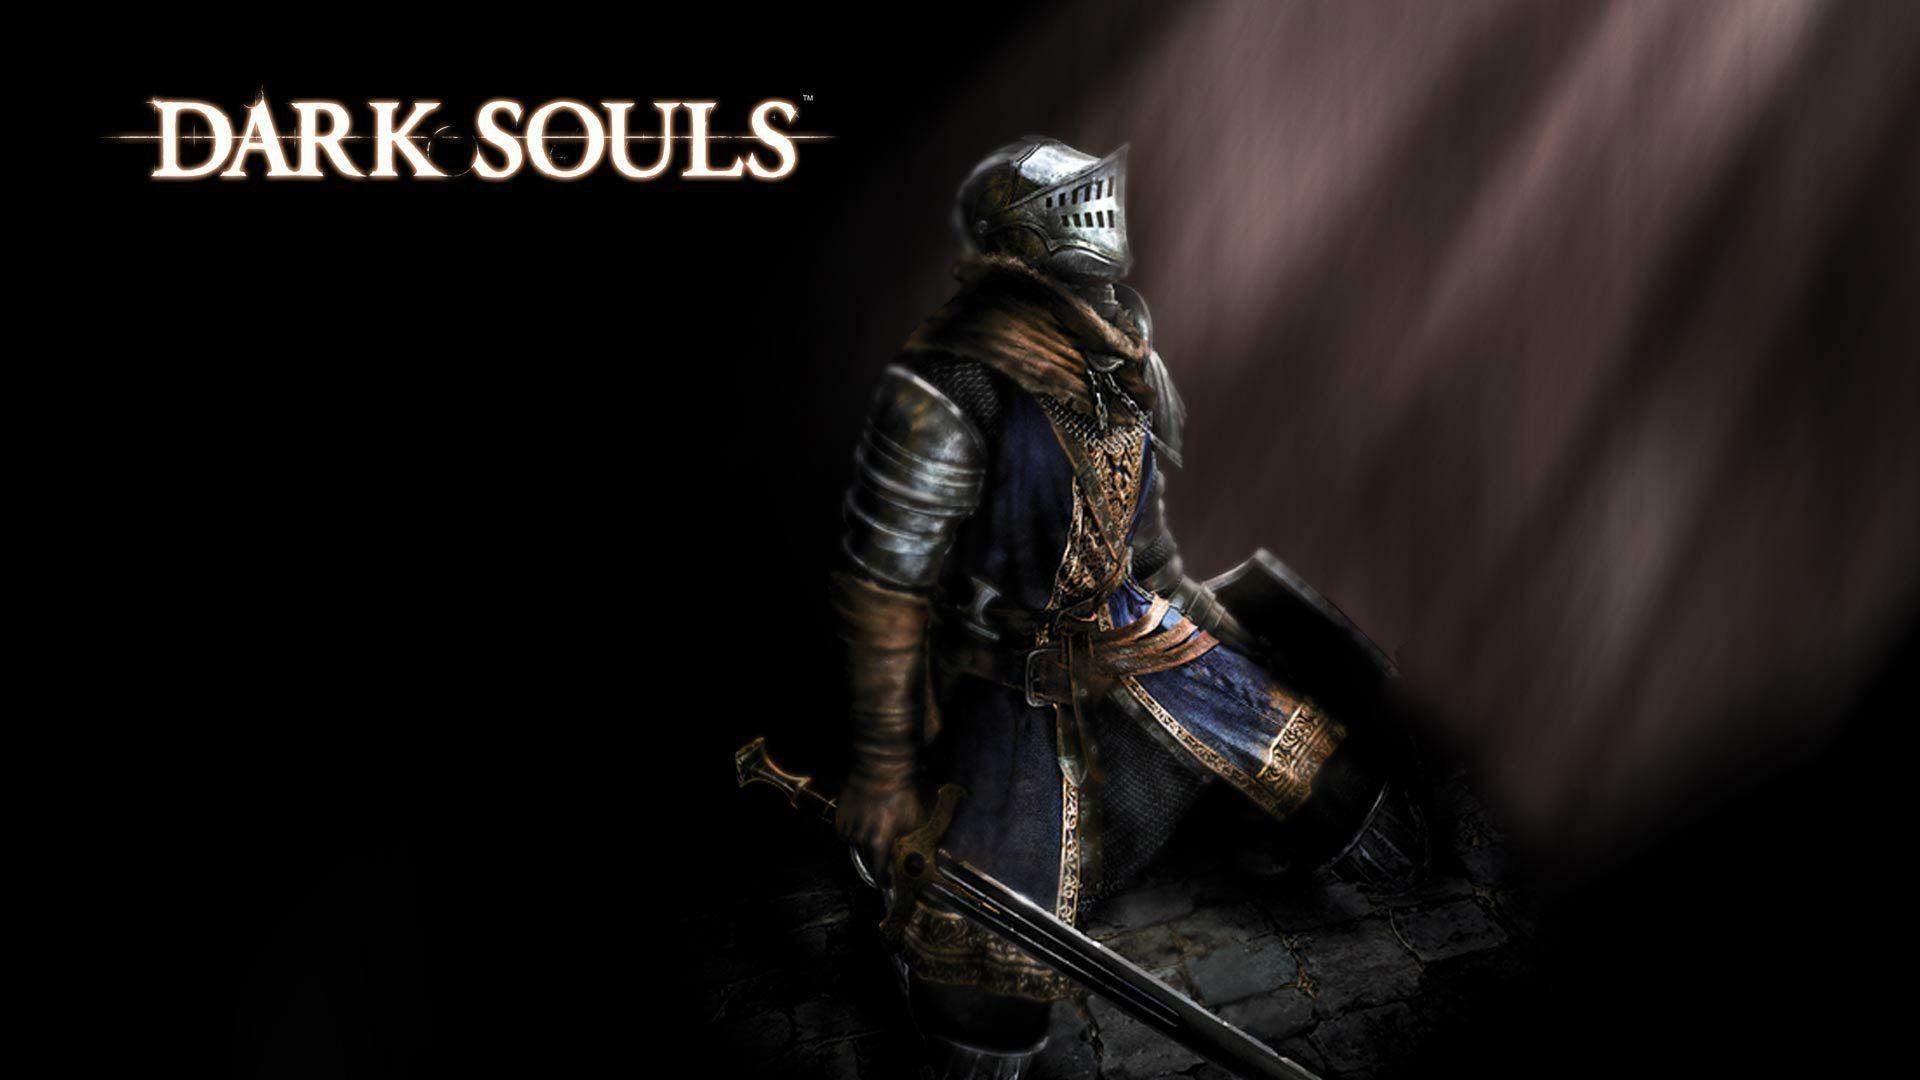 dark souls wallpaper breaking - photo #28